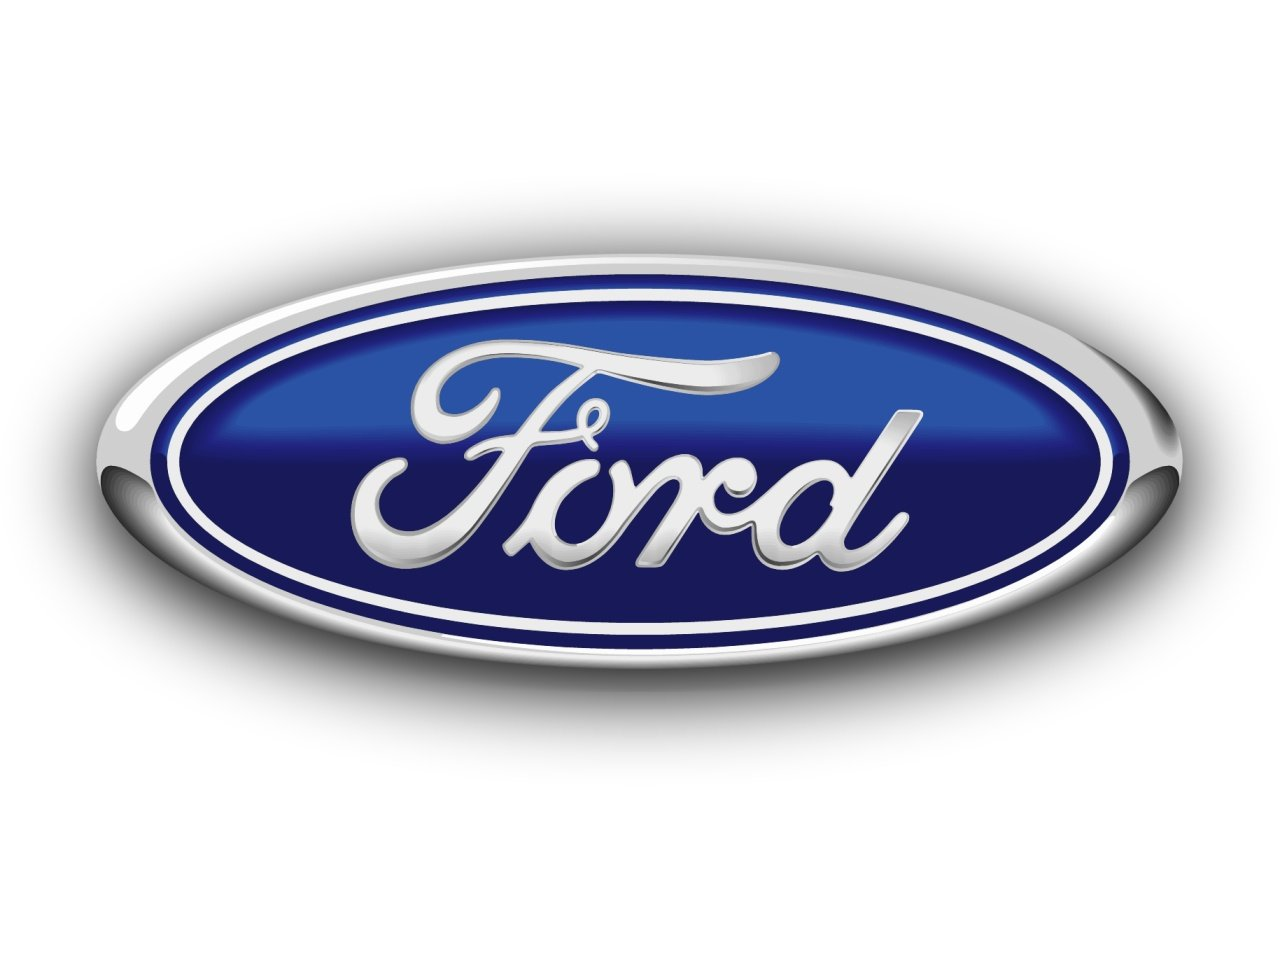 Ford is the Top Brand in America